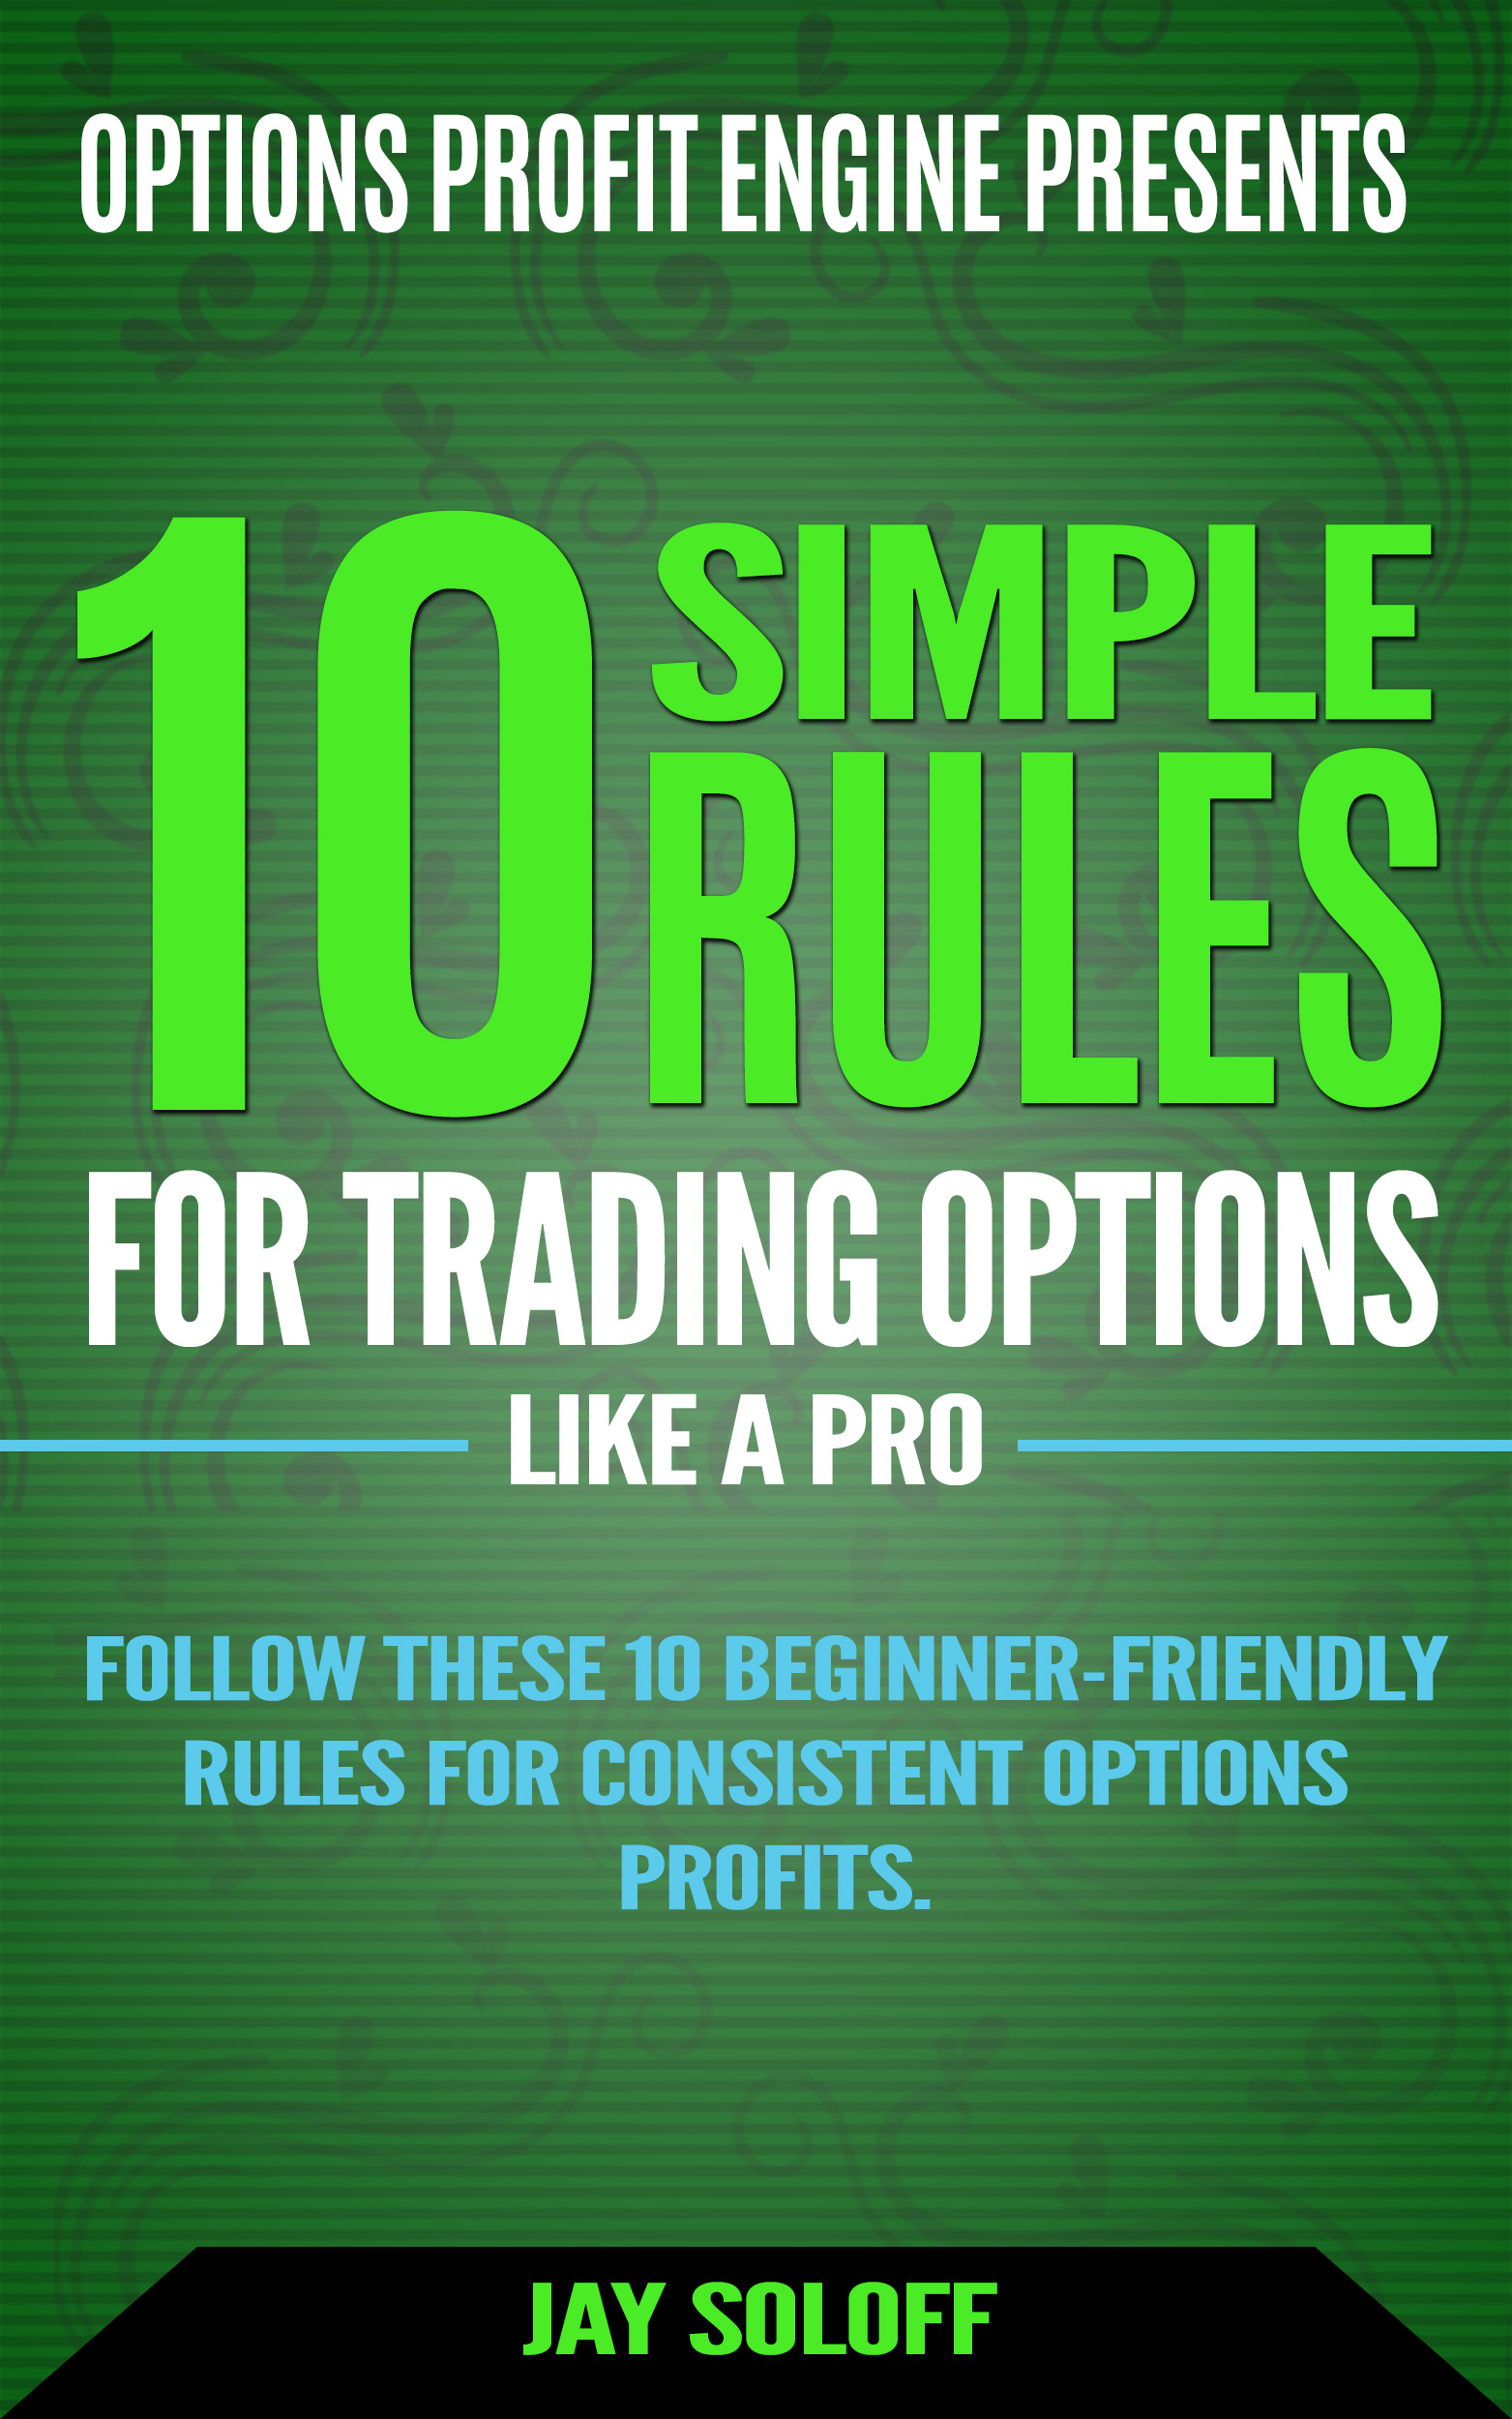 [FREE DOWNLOAD] 10 Simple Rules for Trading Options Like a Pro